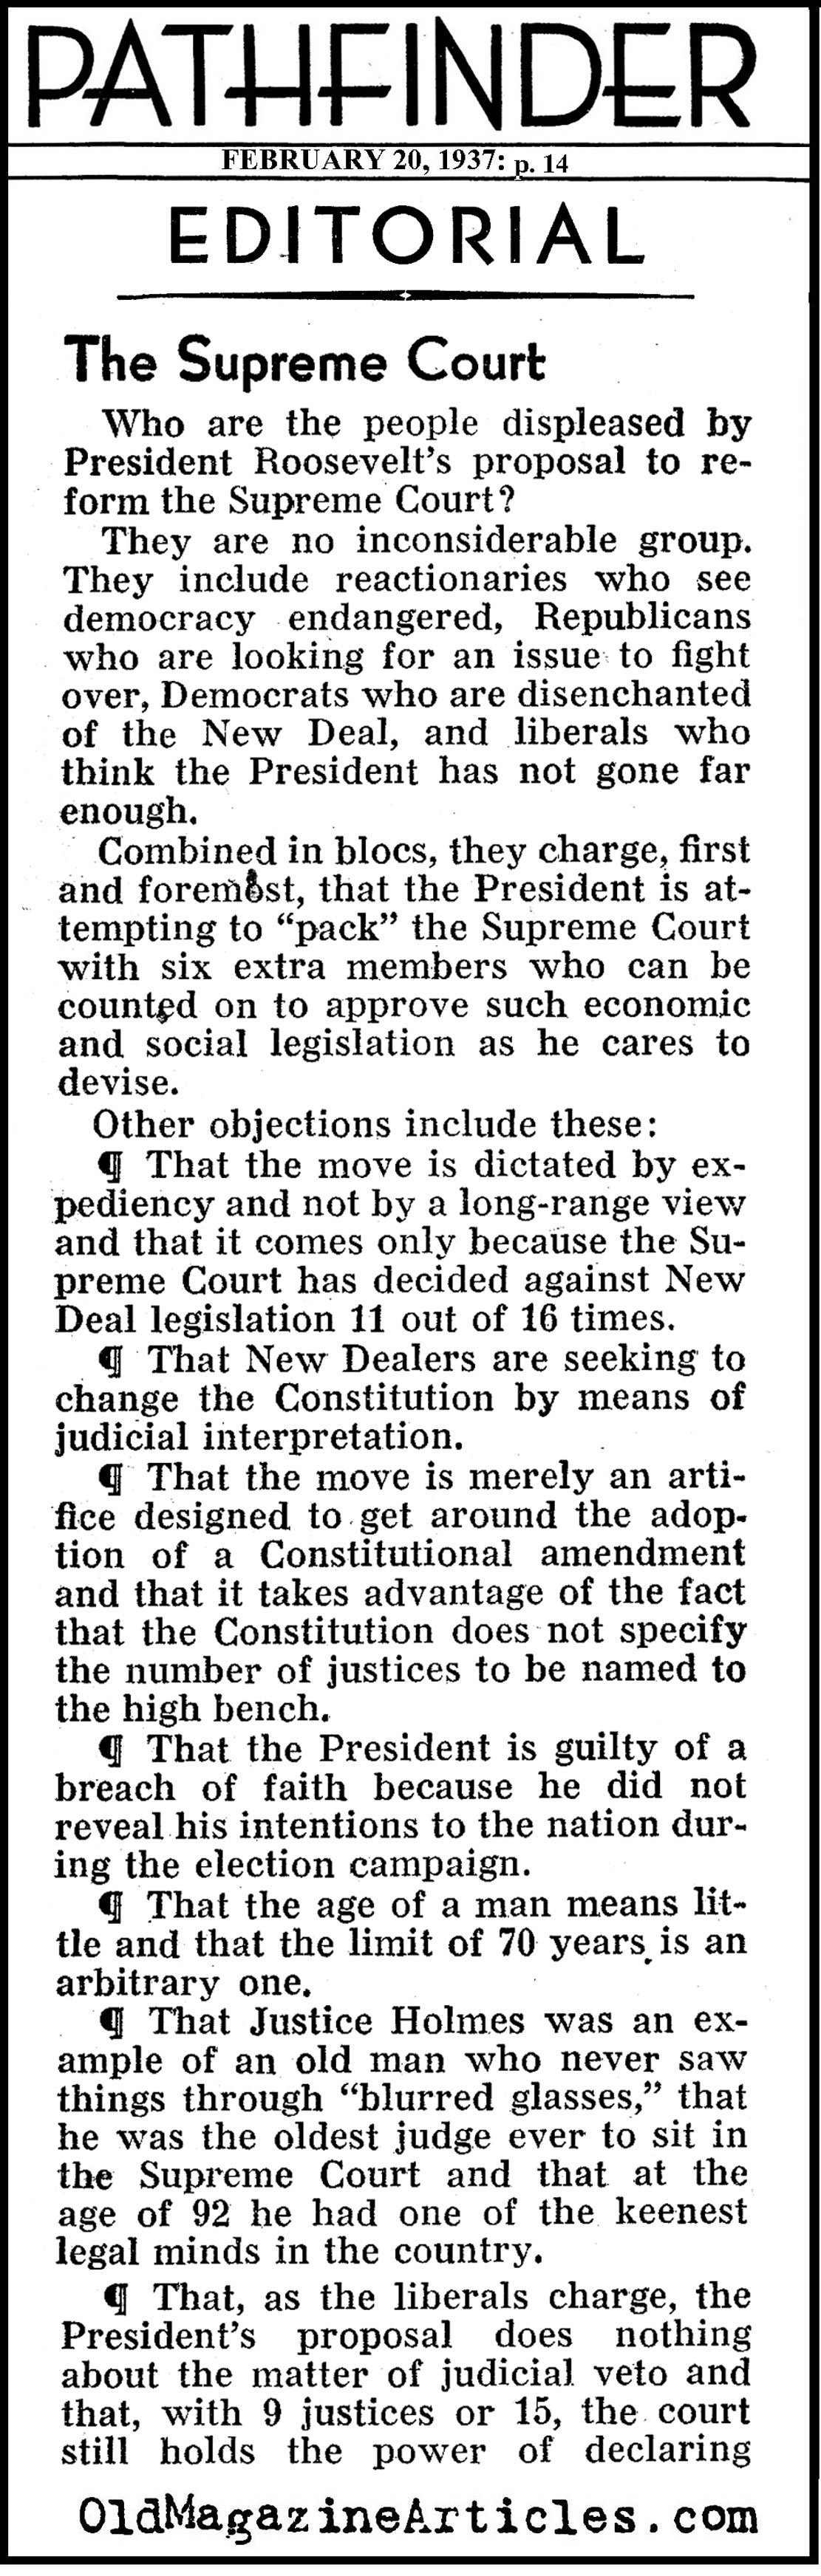 The Critics of FDR's Supreme Court Scheme (Pathfinder Magazine, 1937)